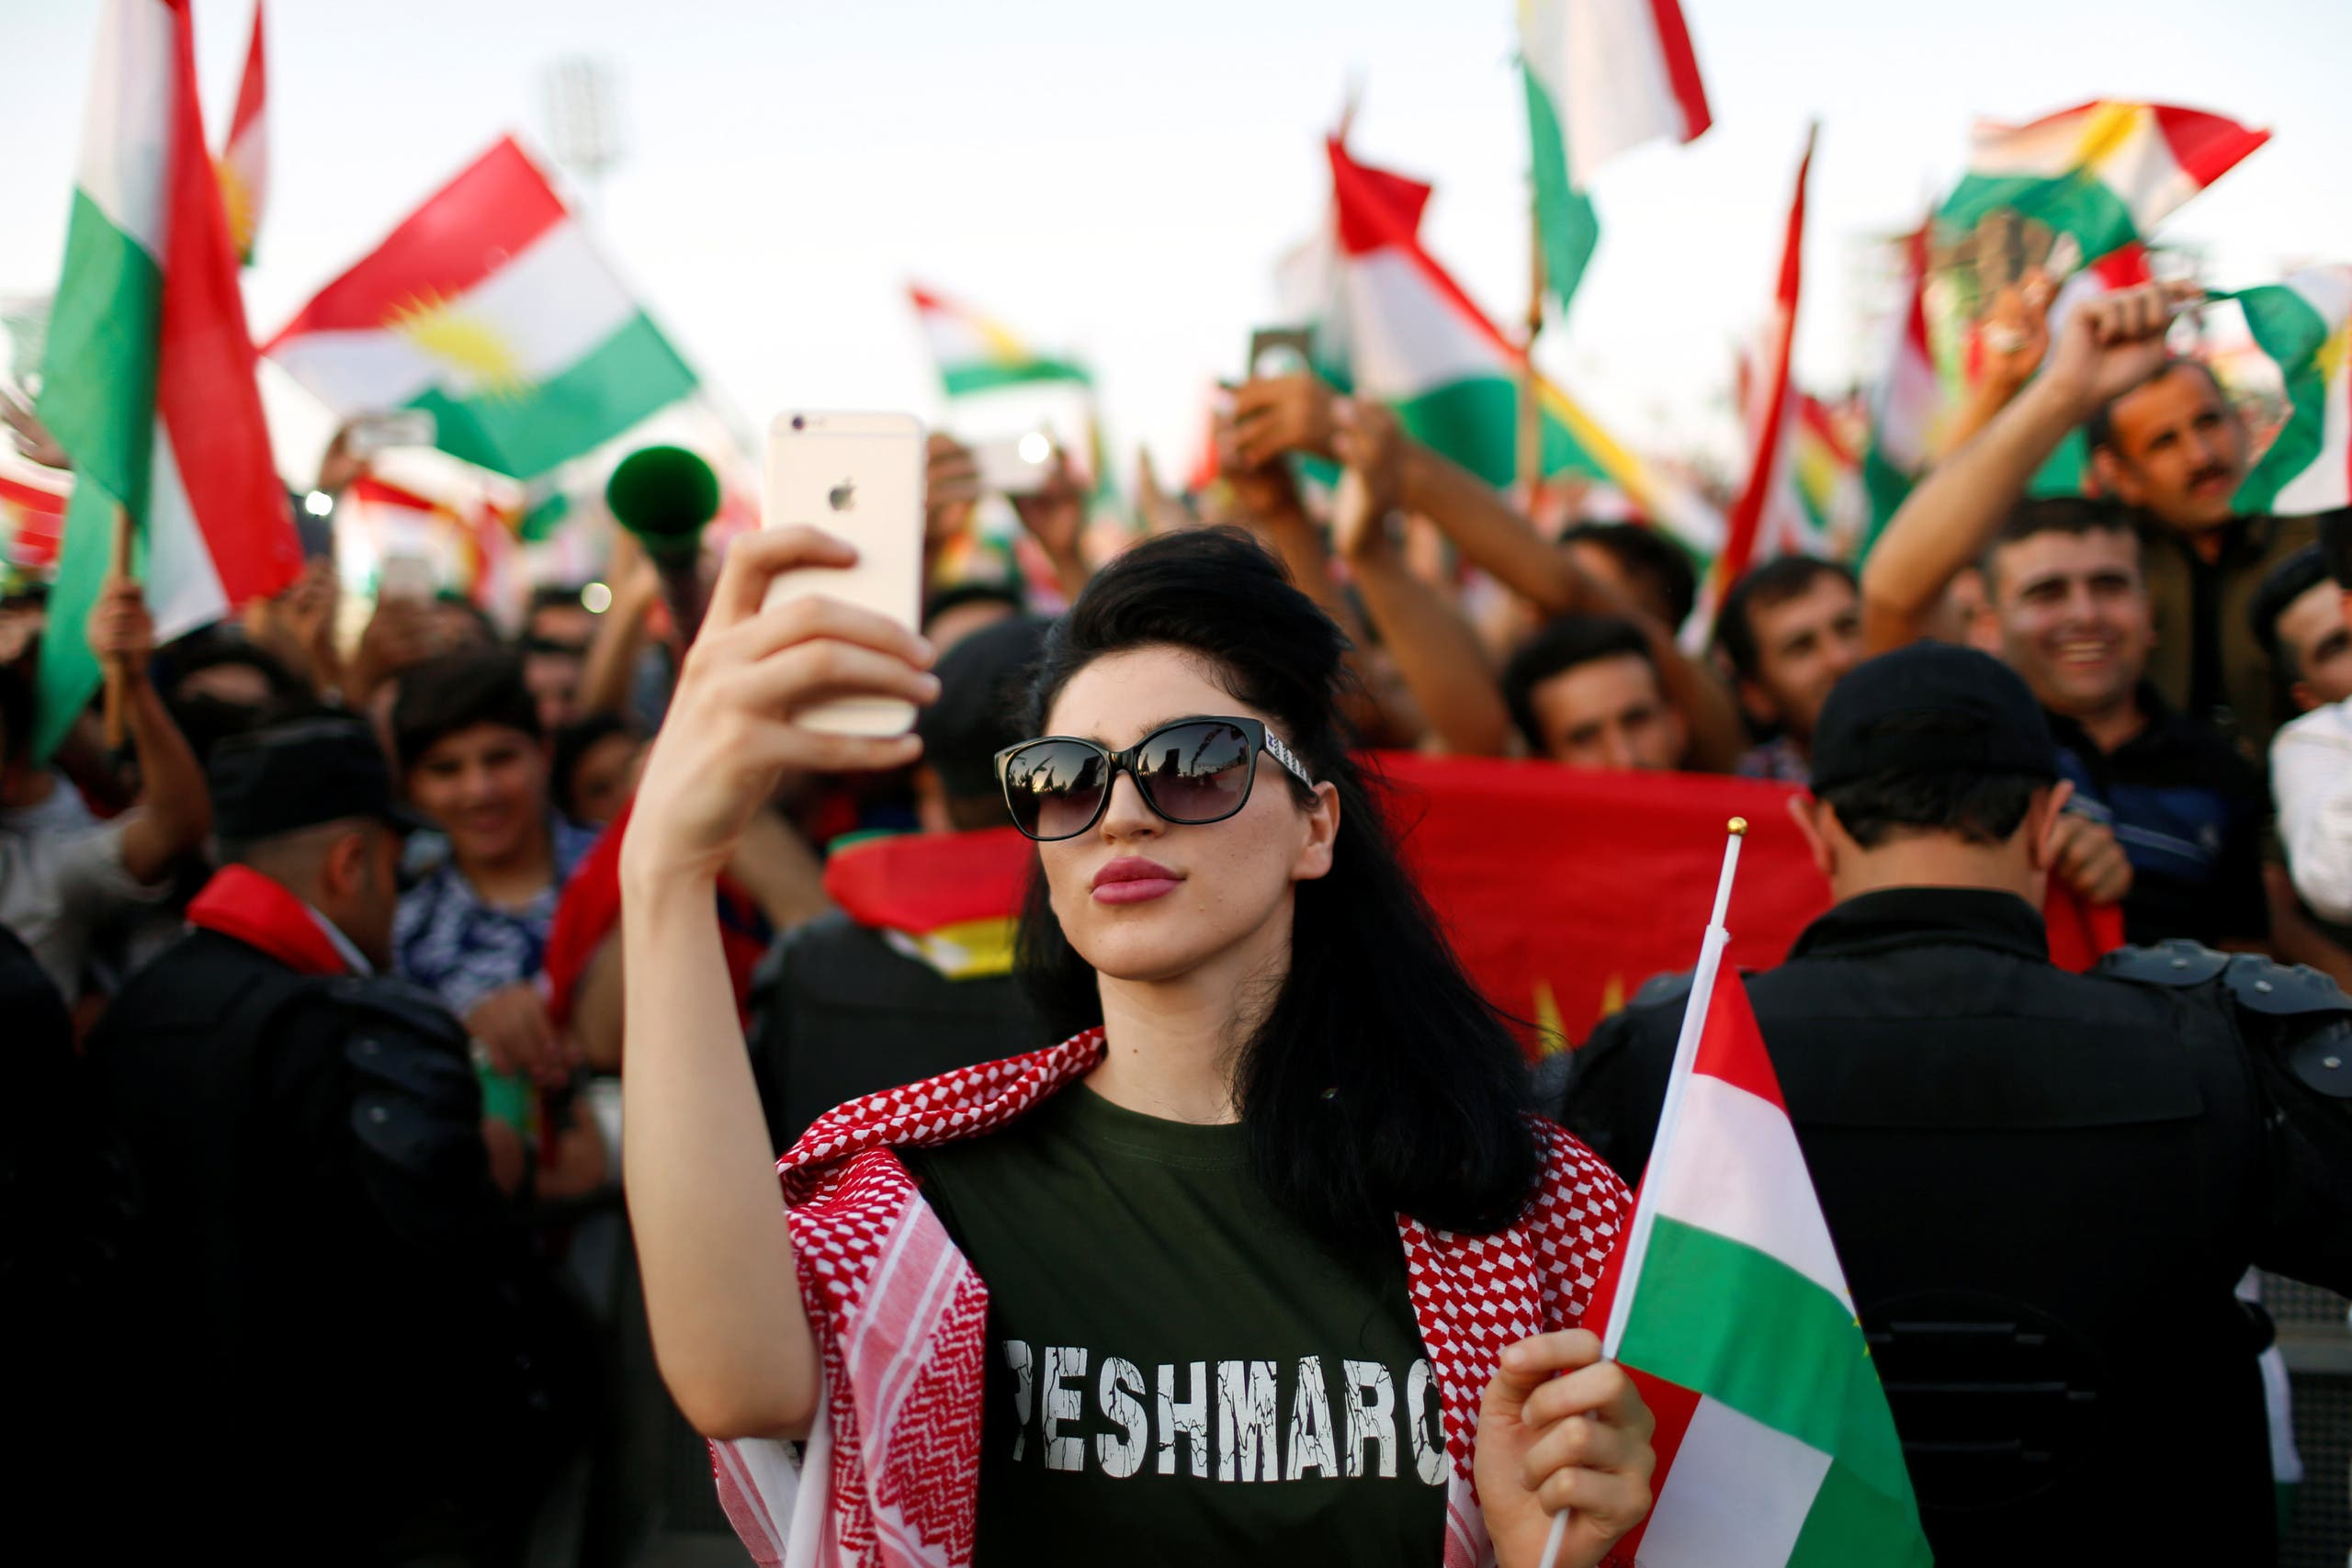 A Kurdish woman takes a selfie to show support for the upcoming September 25th independence referendum in Erbil, Iraq September 22, 2017. (retures)